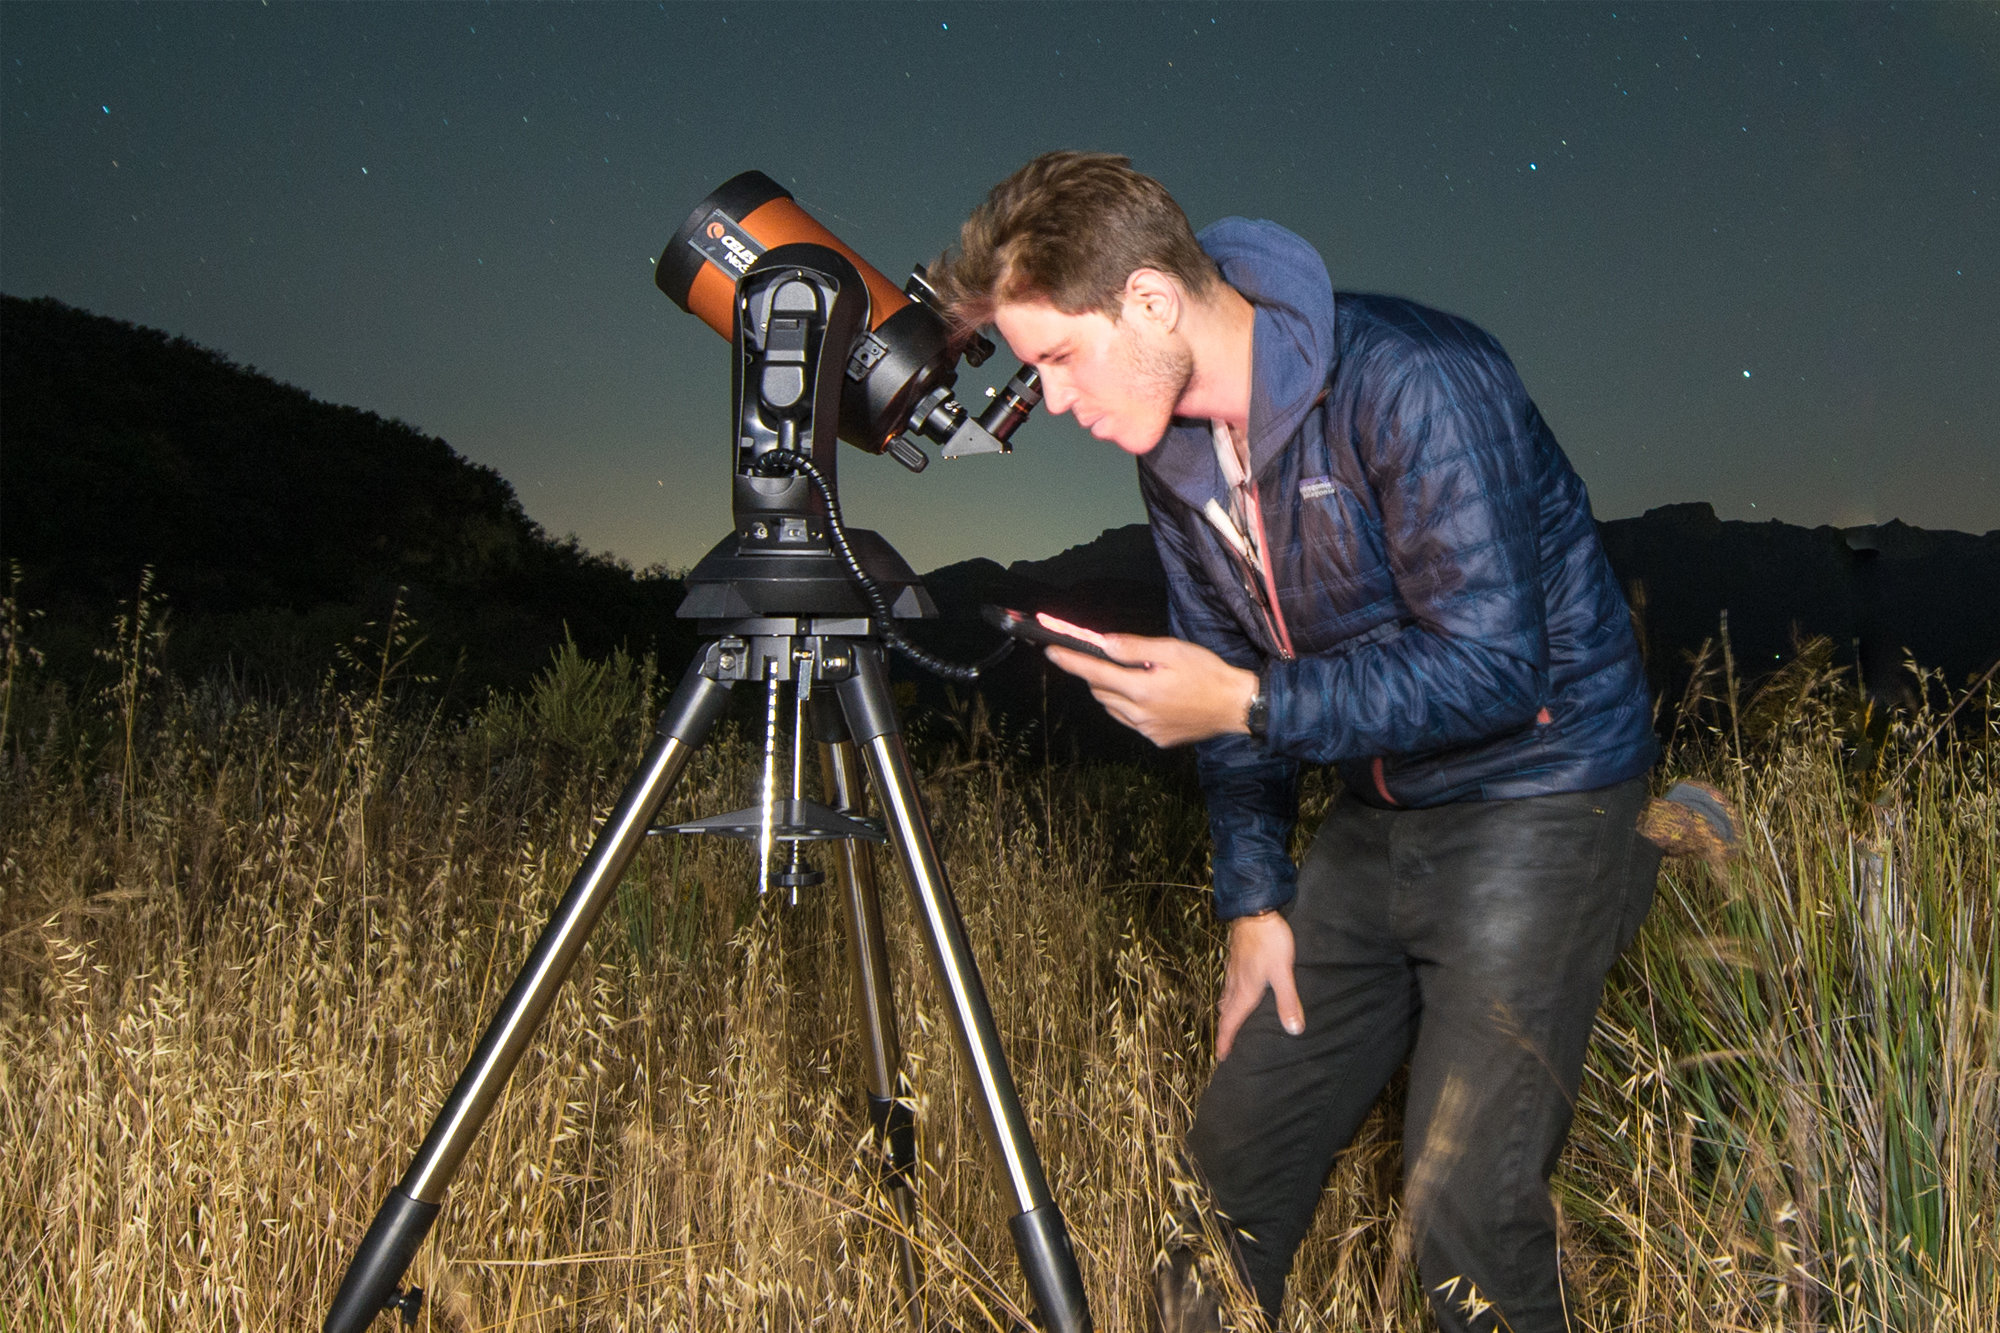 A Beginner Guide: How to Operate Your New Small Telescopes